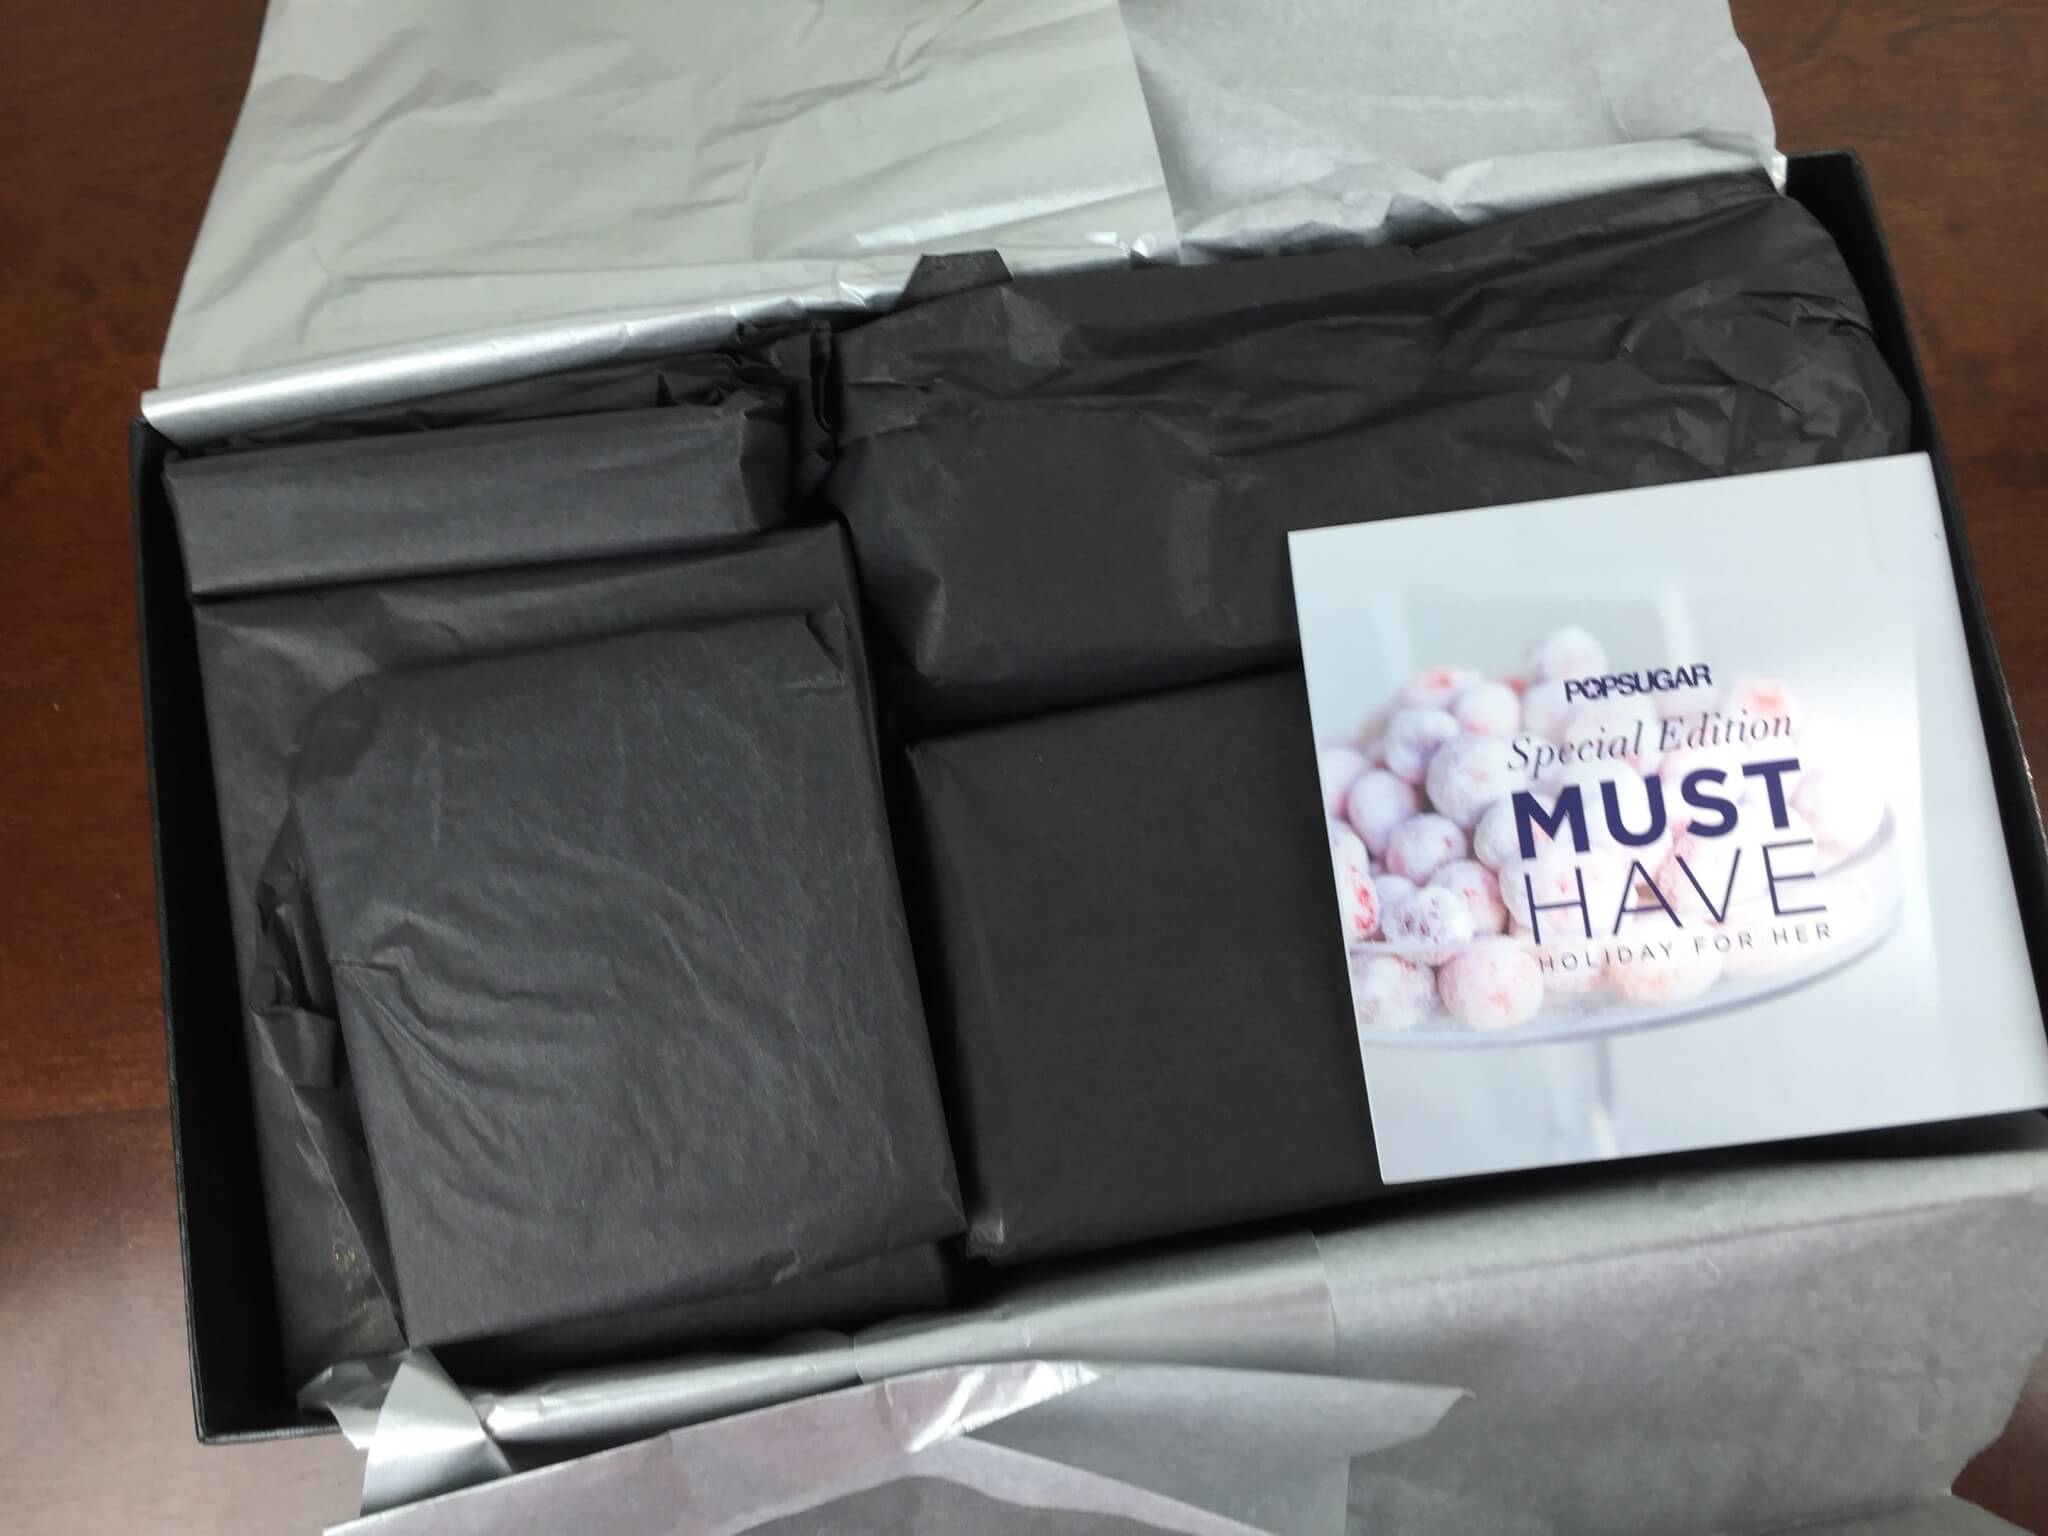 POPSUGAR Must Have 2015 Special Edition Holiday for Her Box Review